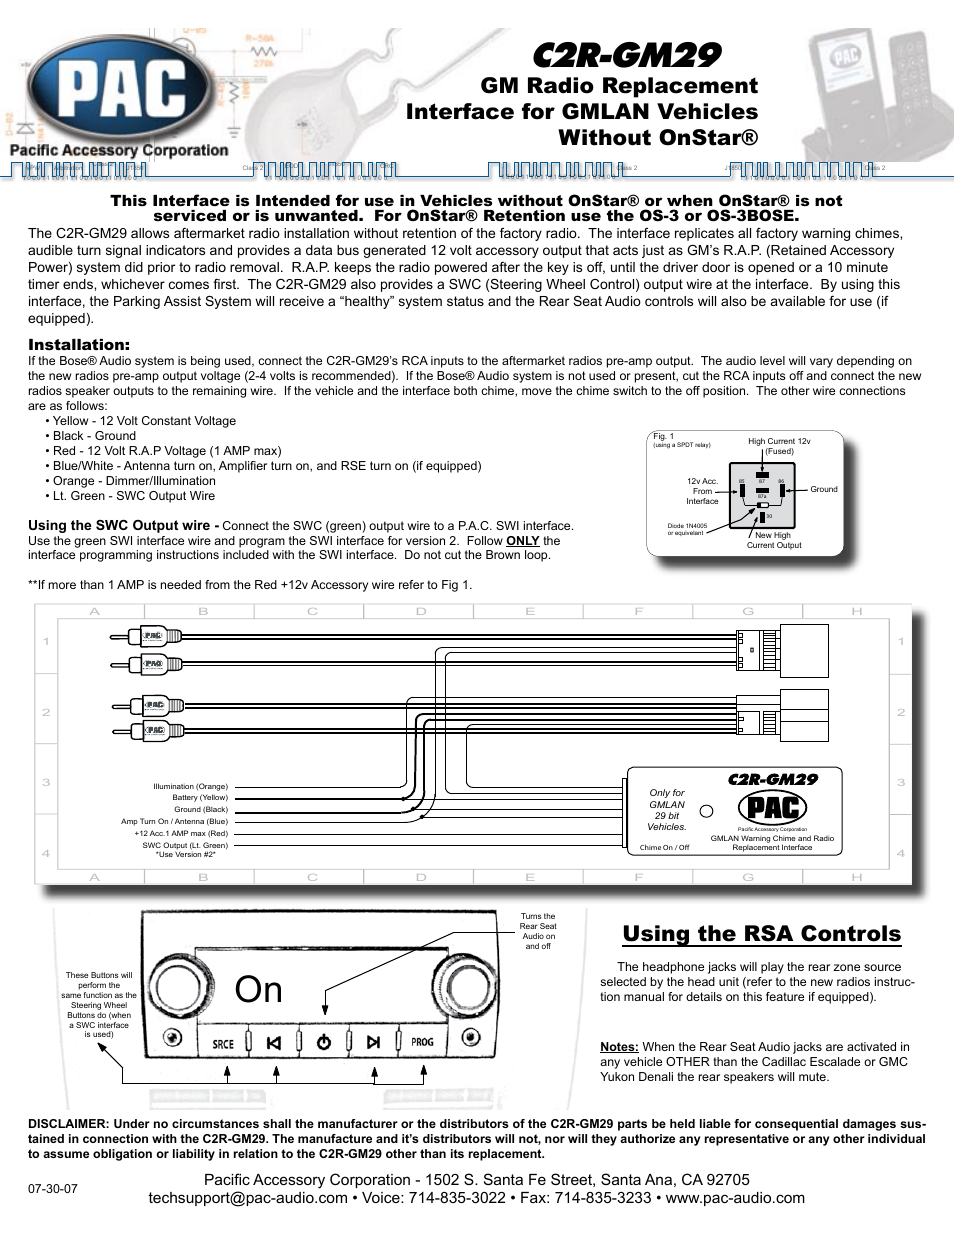 c2r gm29 wiring diagram c2r image wiring diagram pac c2r gm29 user manual 2 pages on c2r gm29 wiring diagram